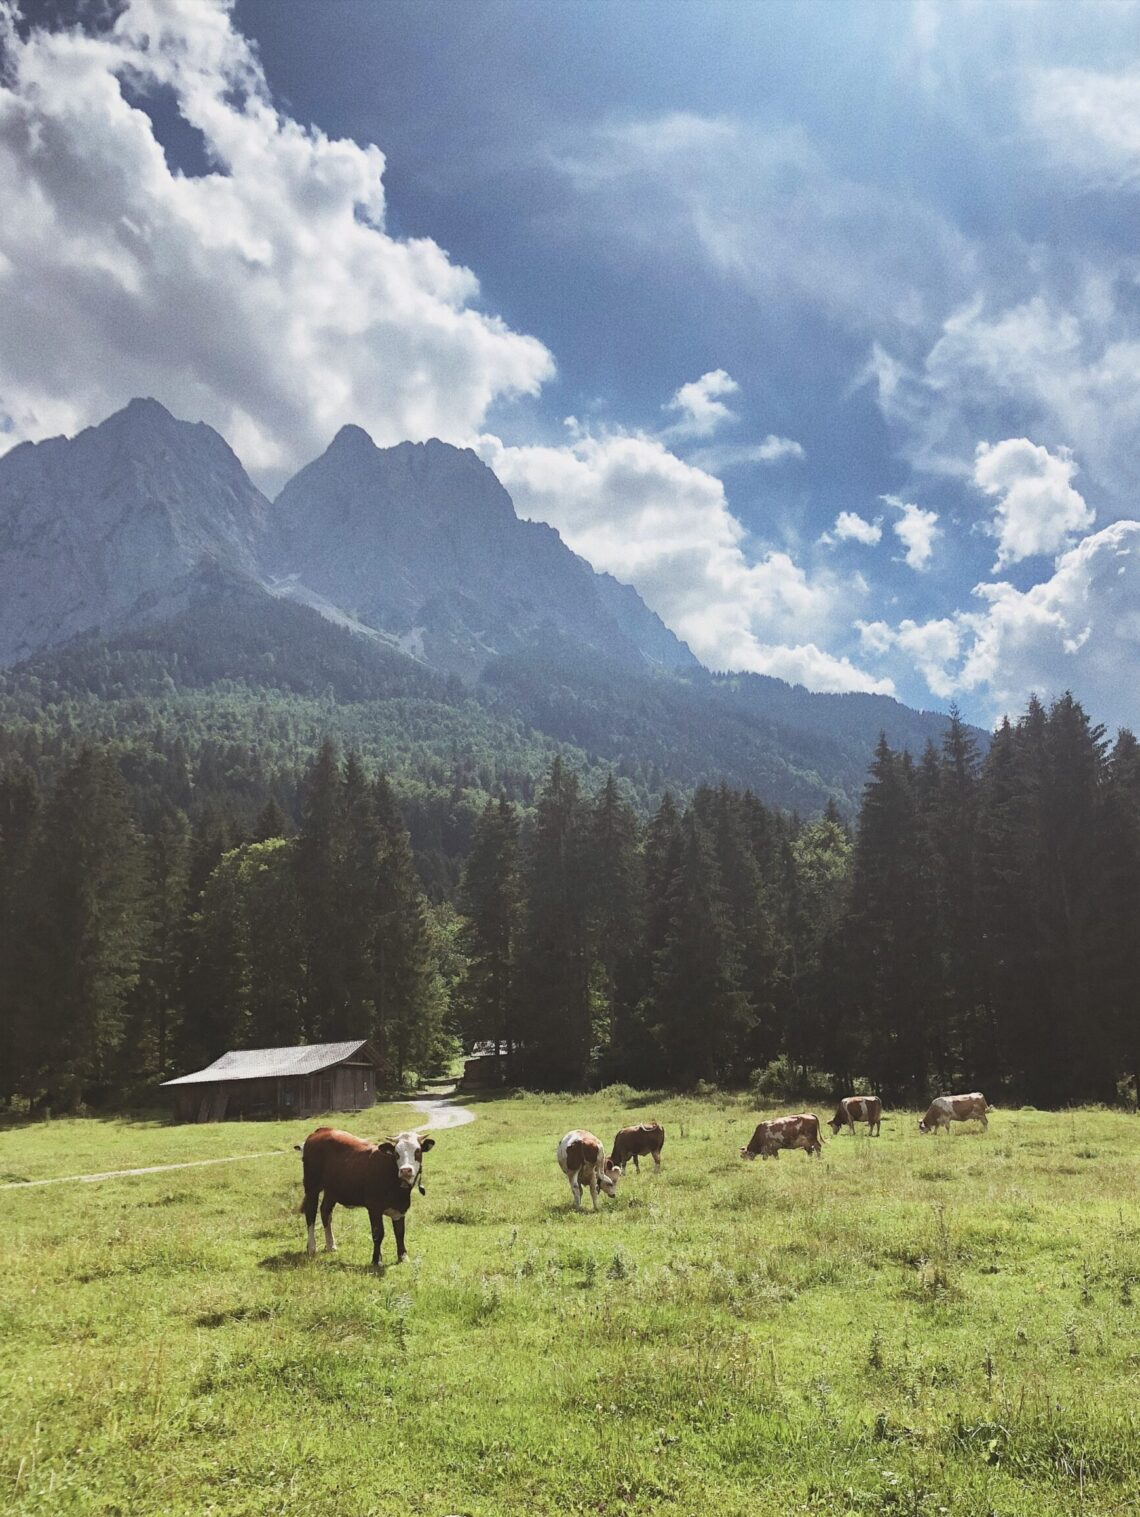 brown and white cows on a meadow during daytime, trees and forest in the background